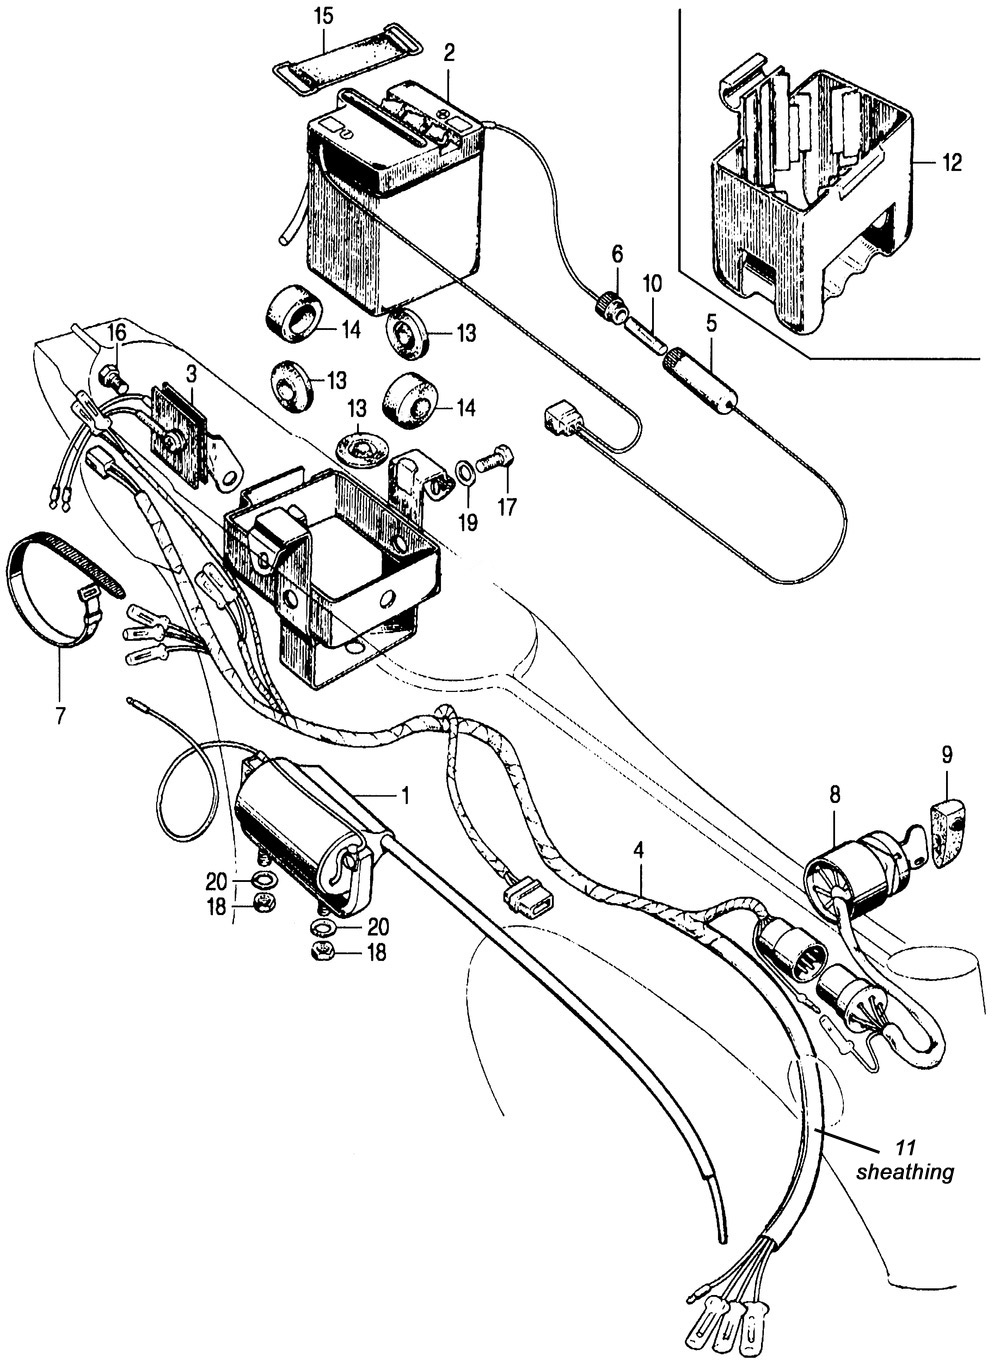 hight resolution of ct70 12 volt wire harness